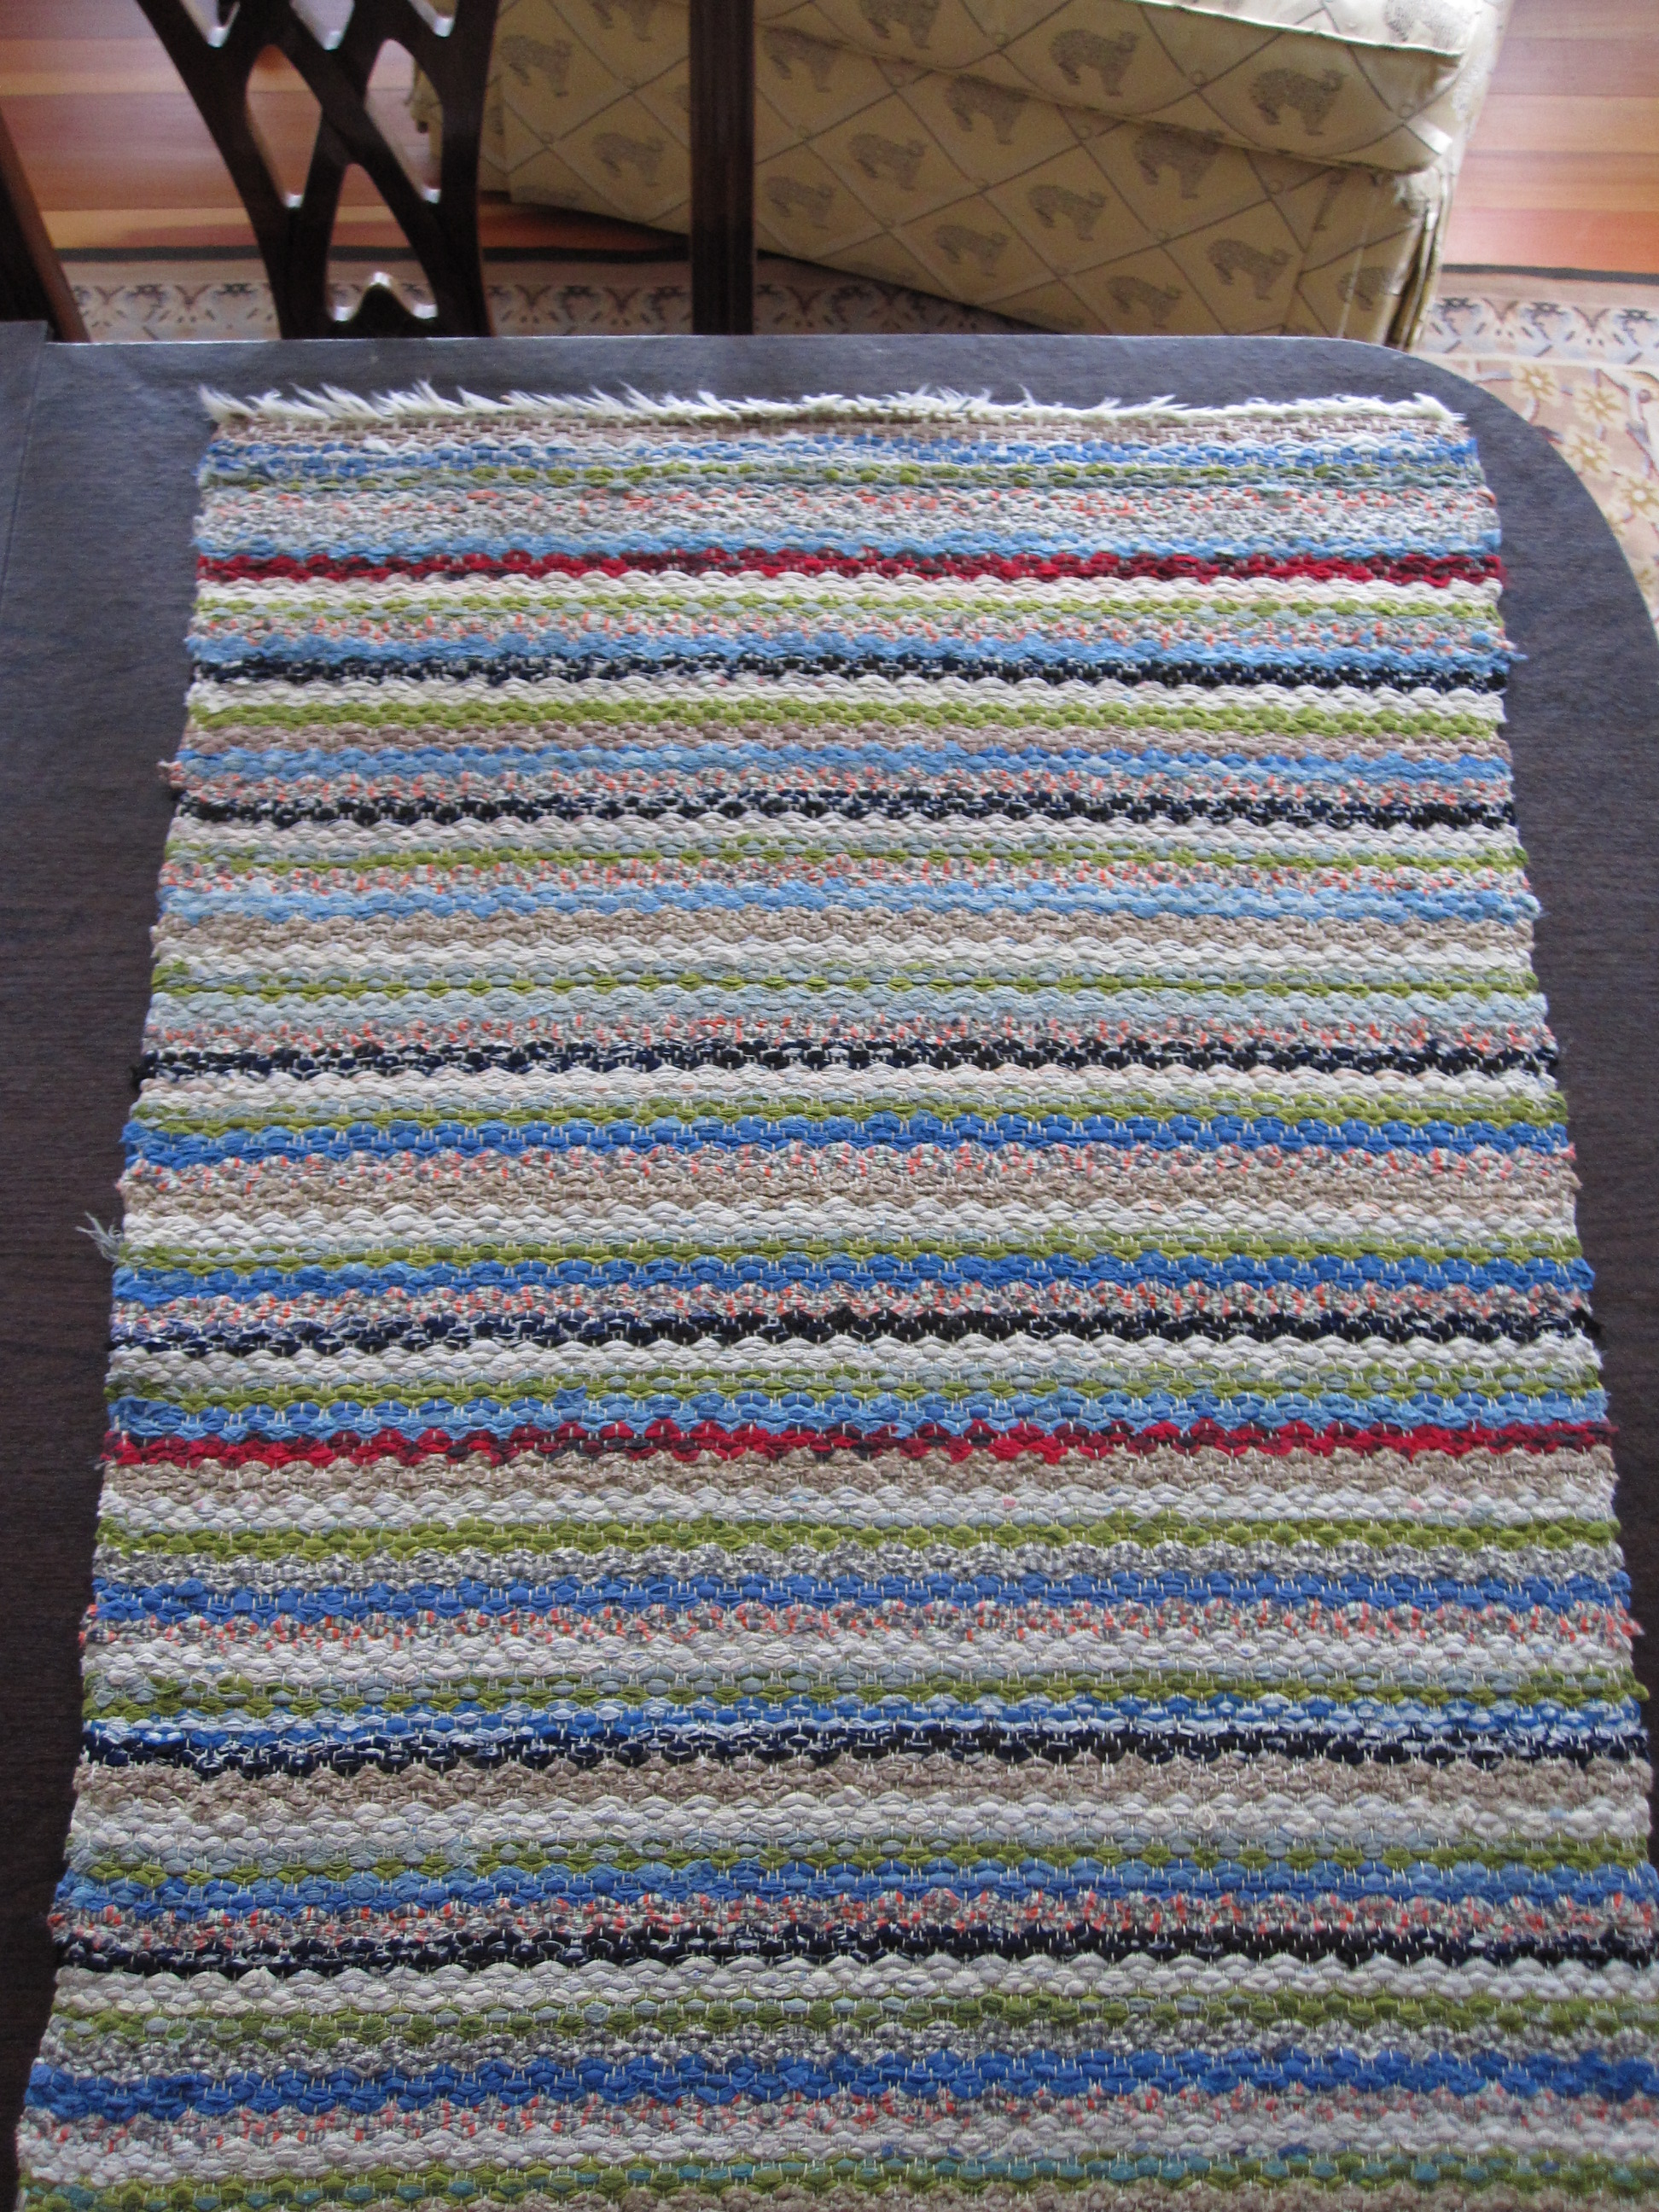 How to make old fashioned rag rugs